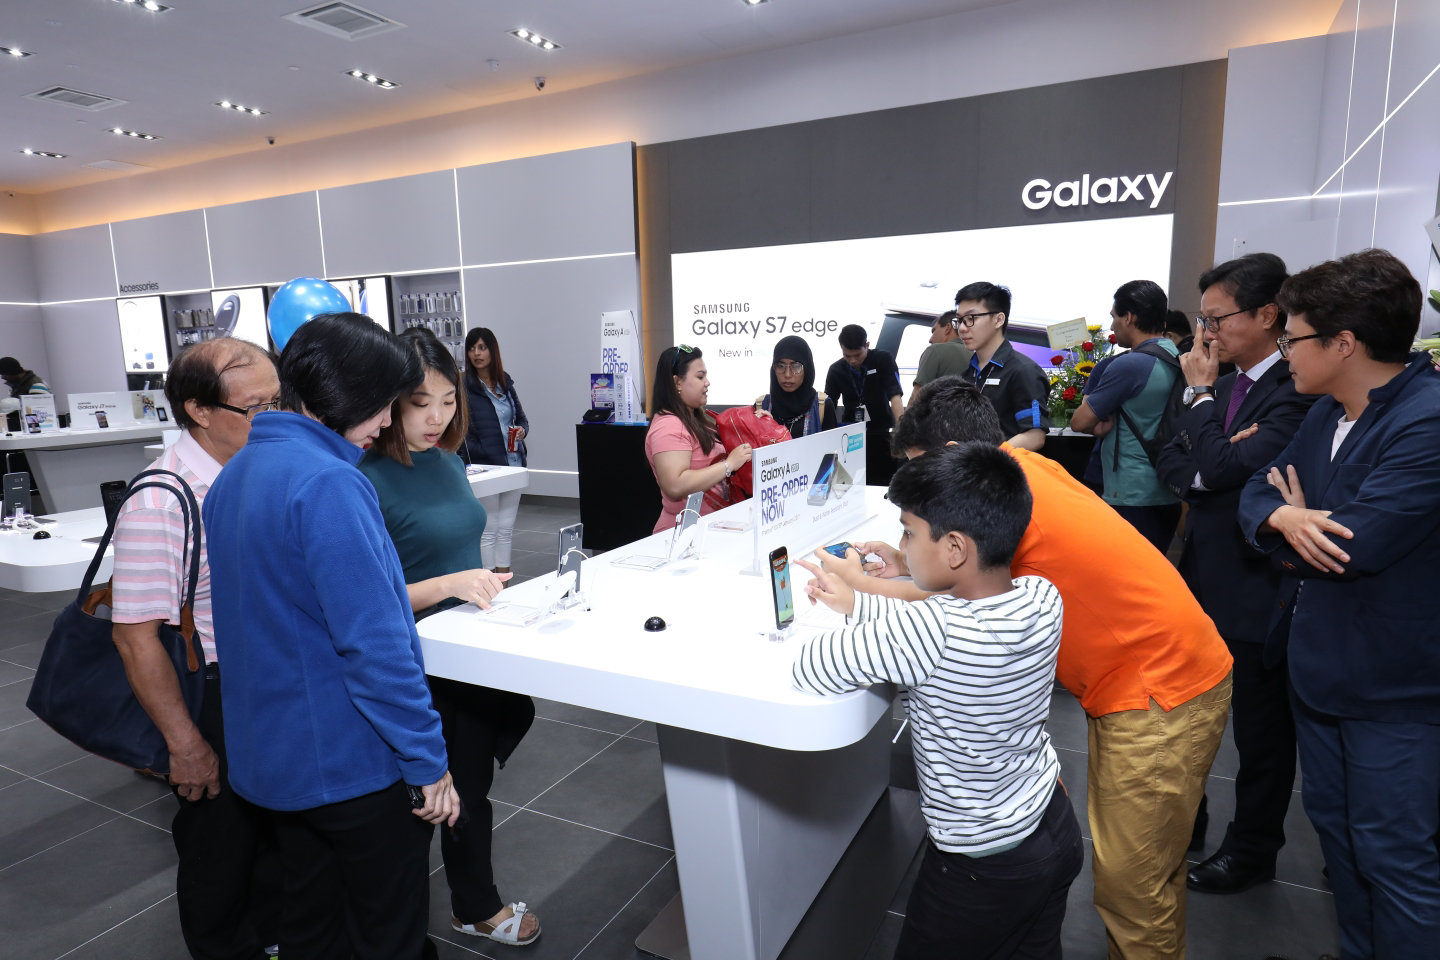 Menu. Galaxy S8 S8 plus QLED TV triple cooling curved uhd monitor Open Search Layer. Samsung Opens First Ever Experience Store in Genting